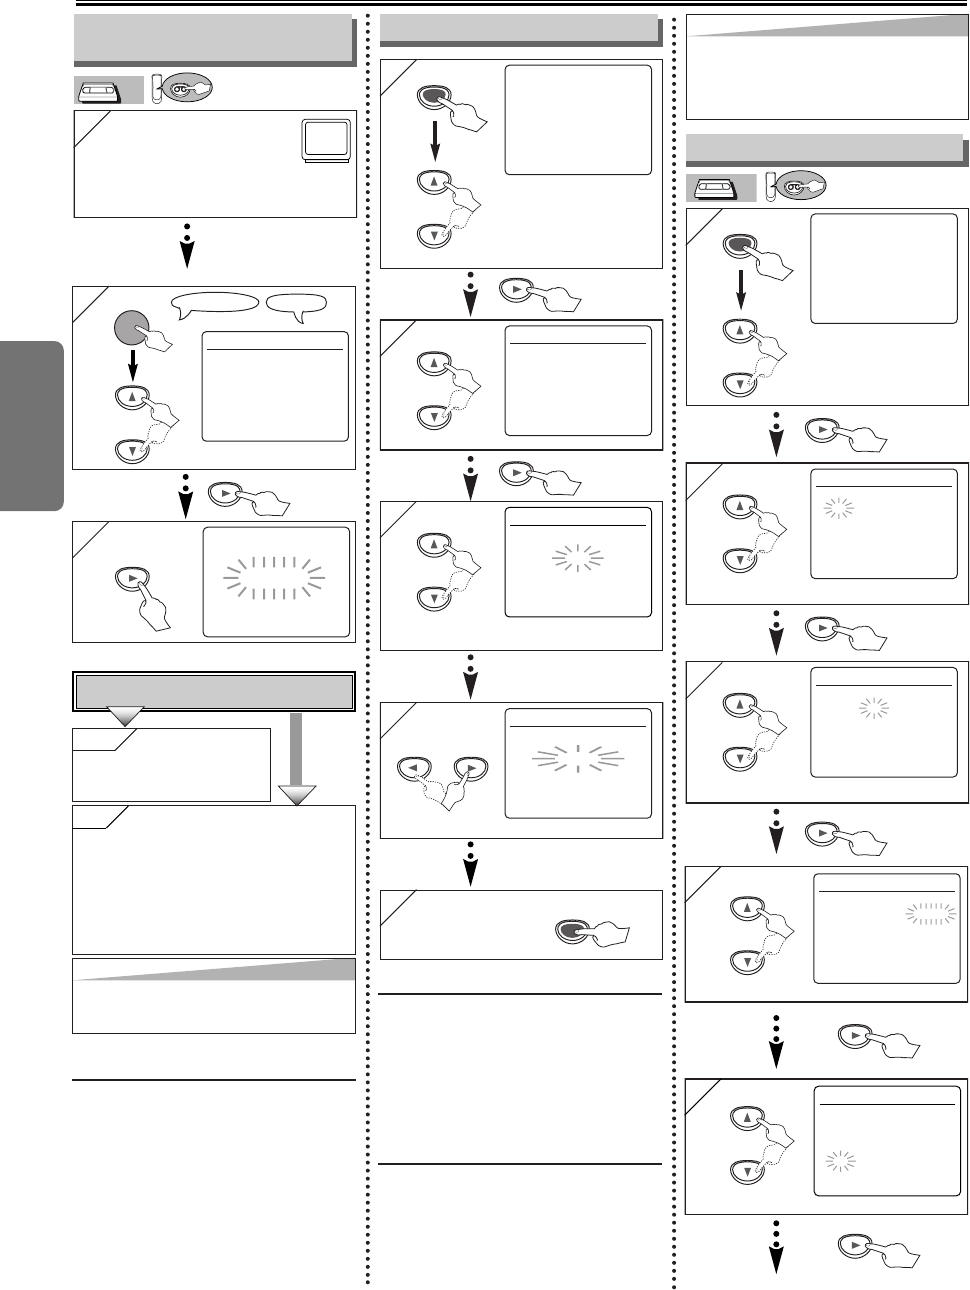 Page 8 of Sylvania DVD Player SRDD495 User Guide